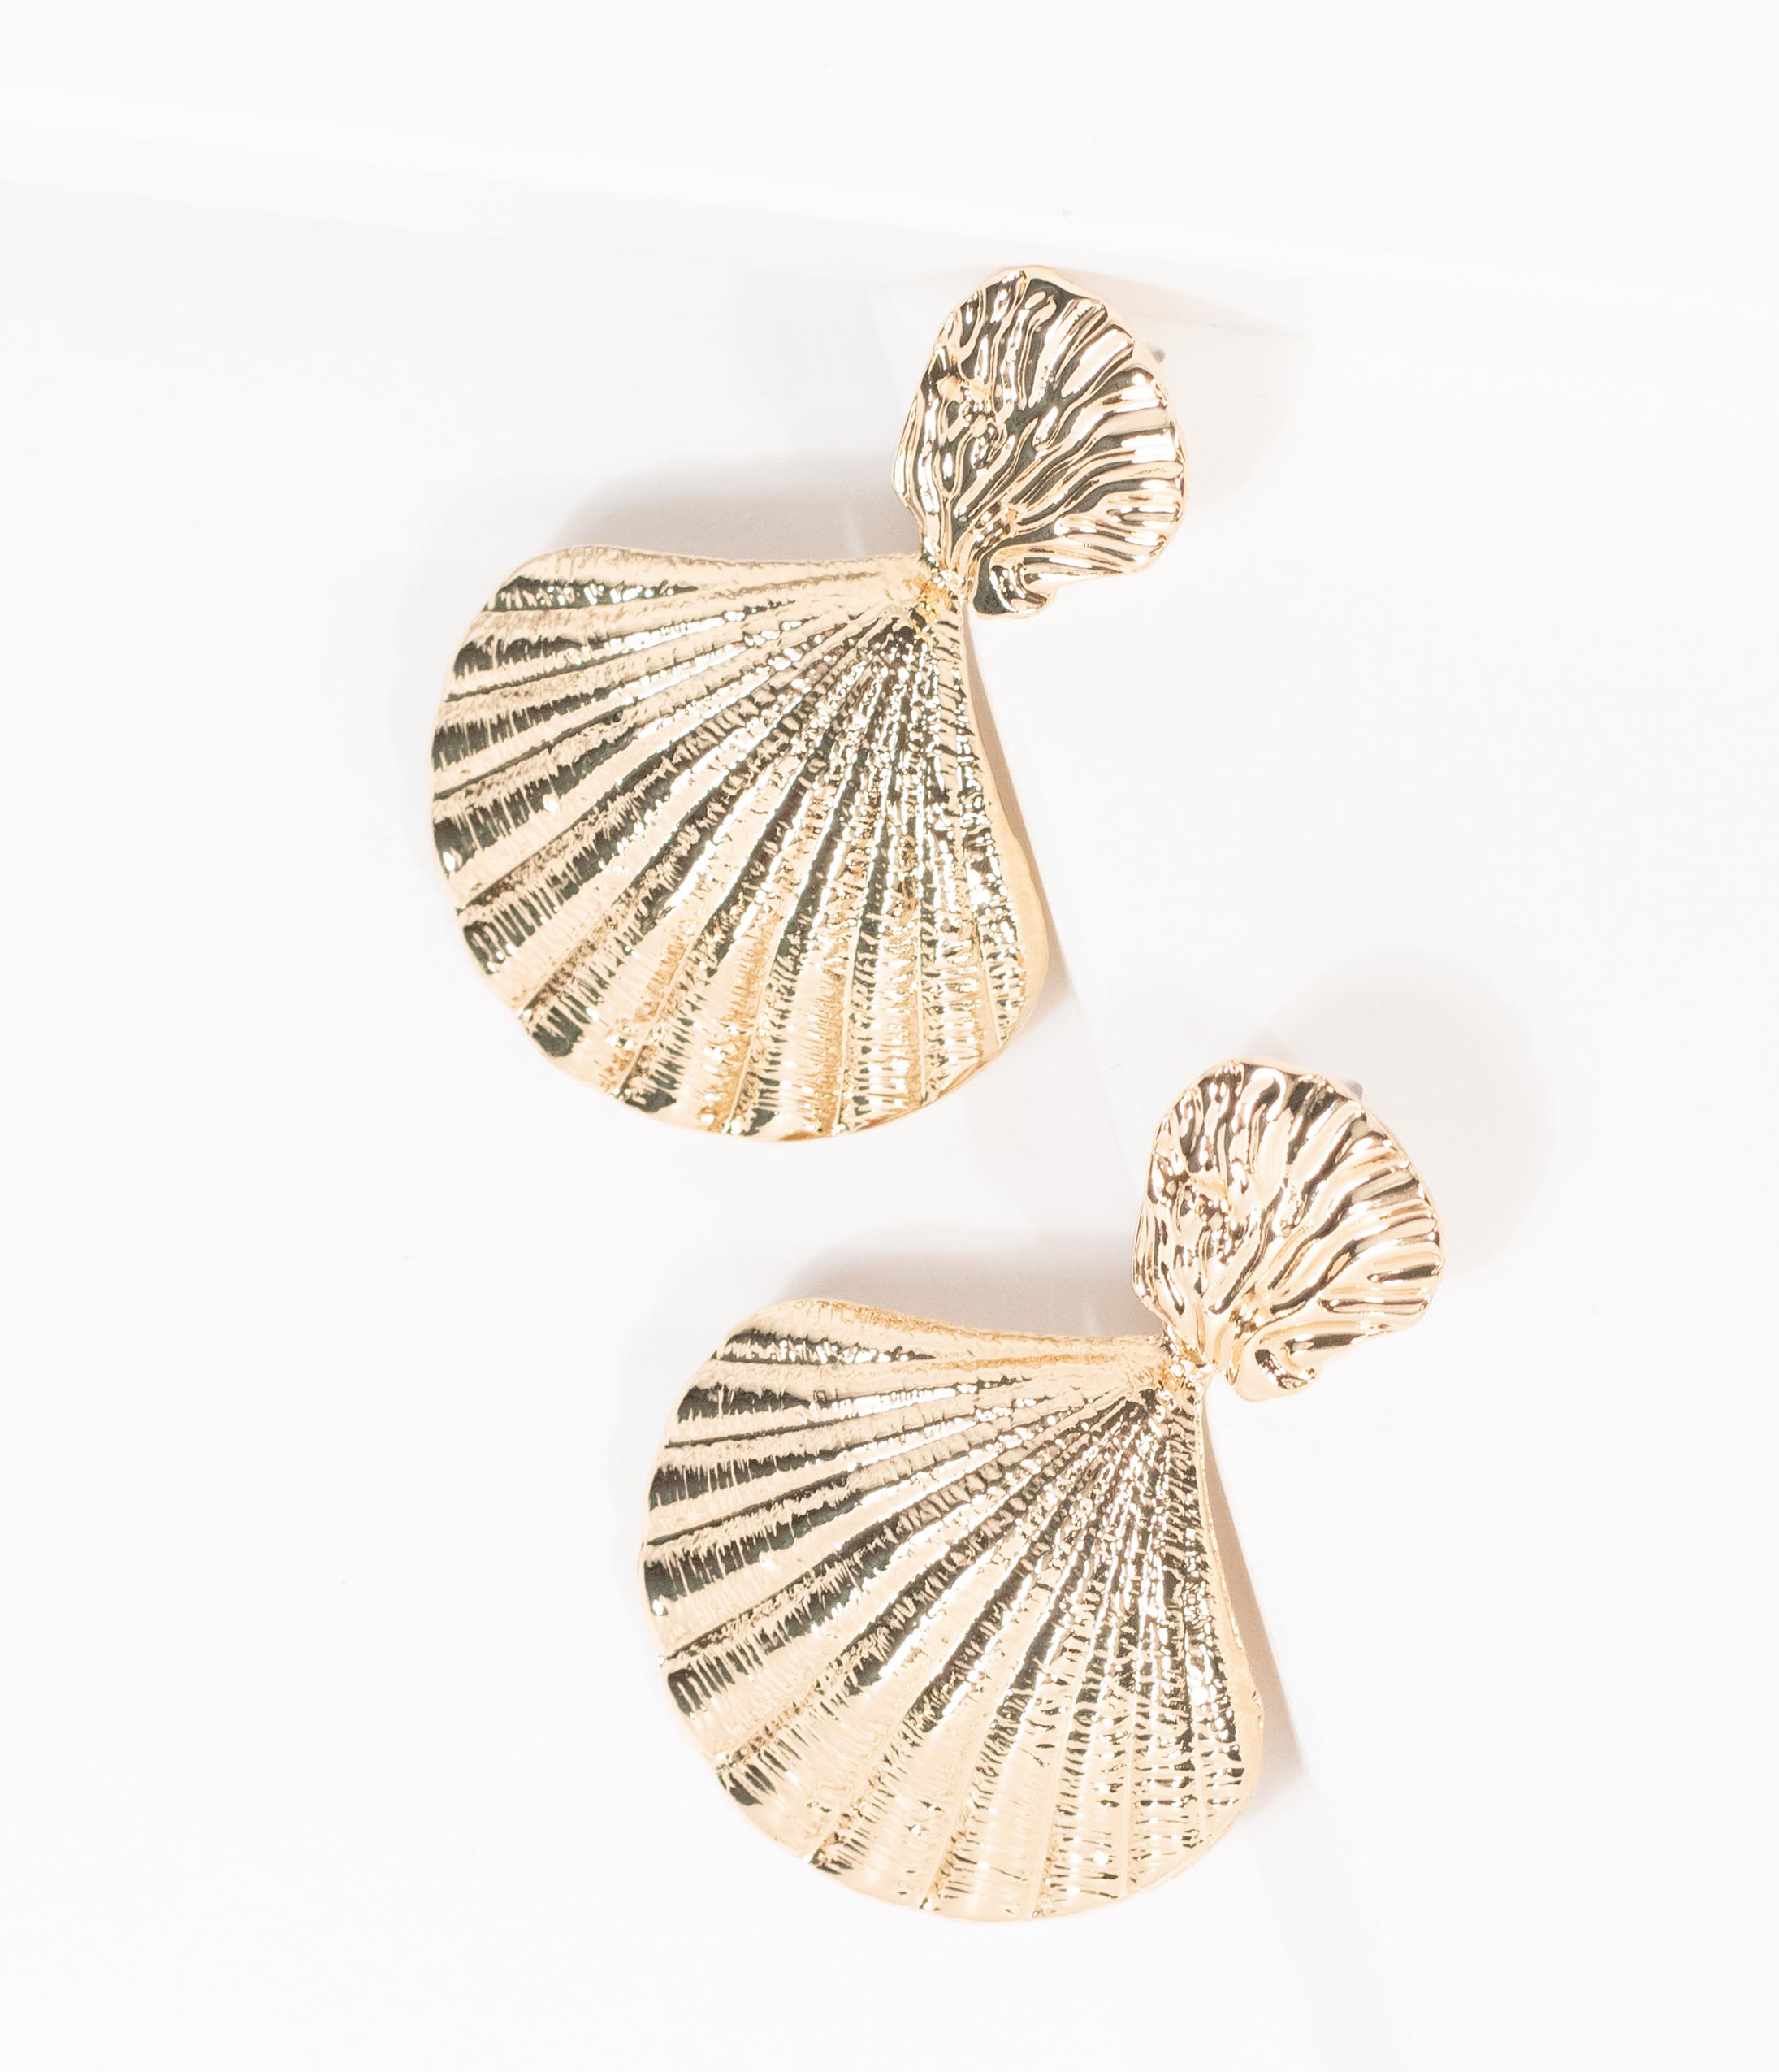 Vintage Style Jewelry, Retro Jewelry Gold Scallop Seashell Earrings $22.00 AT vintagedancer.com